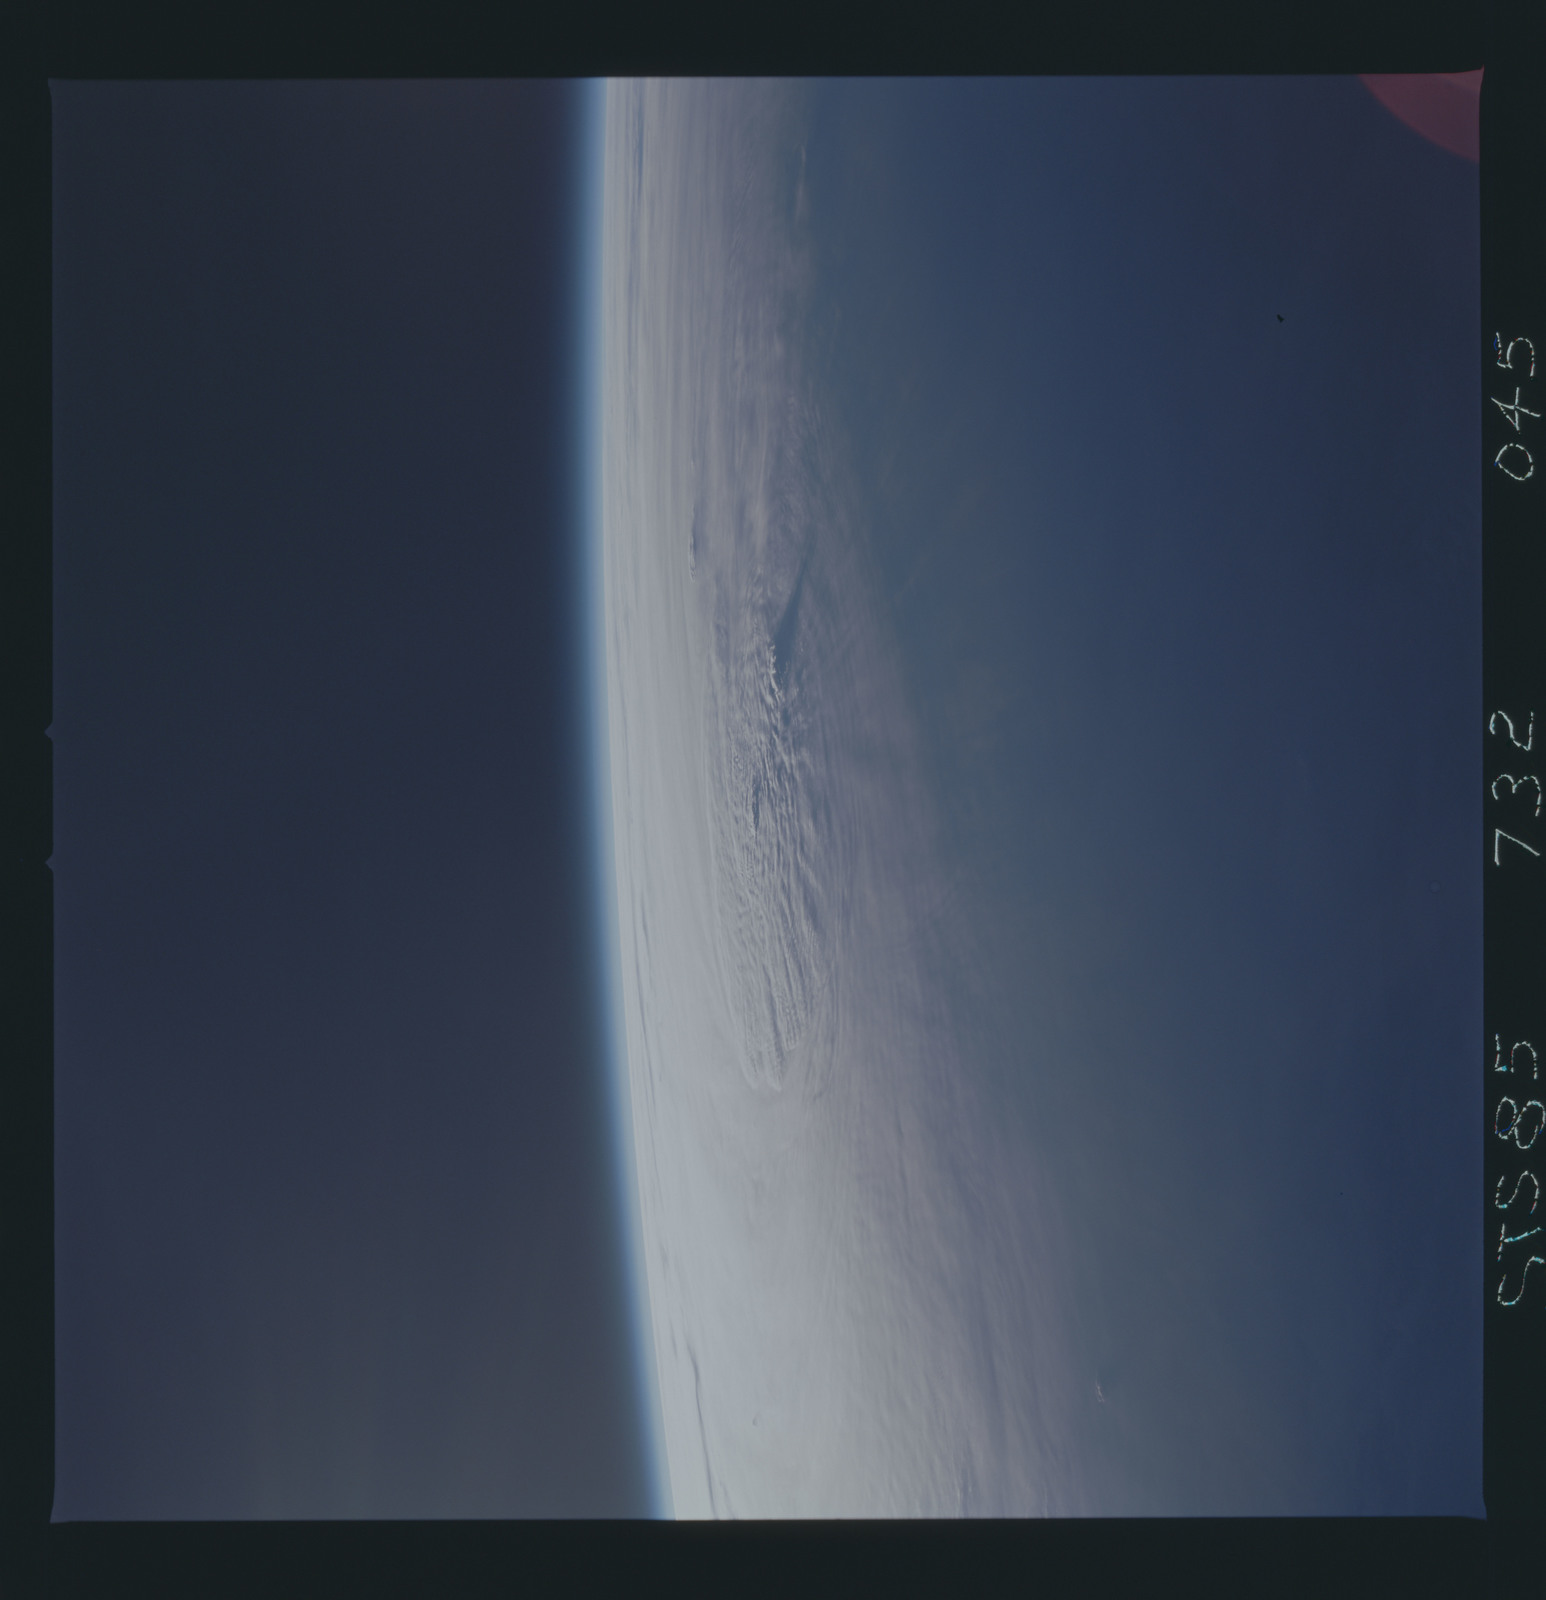 STS085-732-045 - STS-085 - Earth observations taken from orbiter Discovery during STS-85 mission